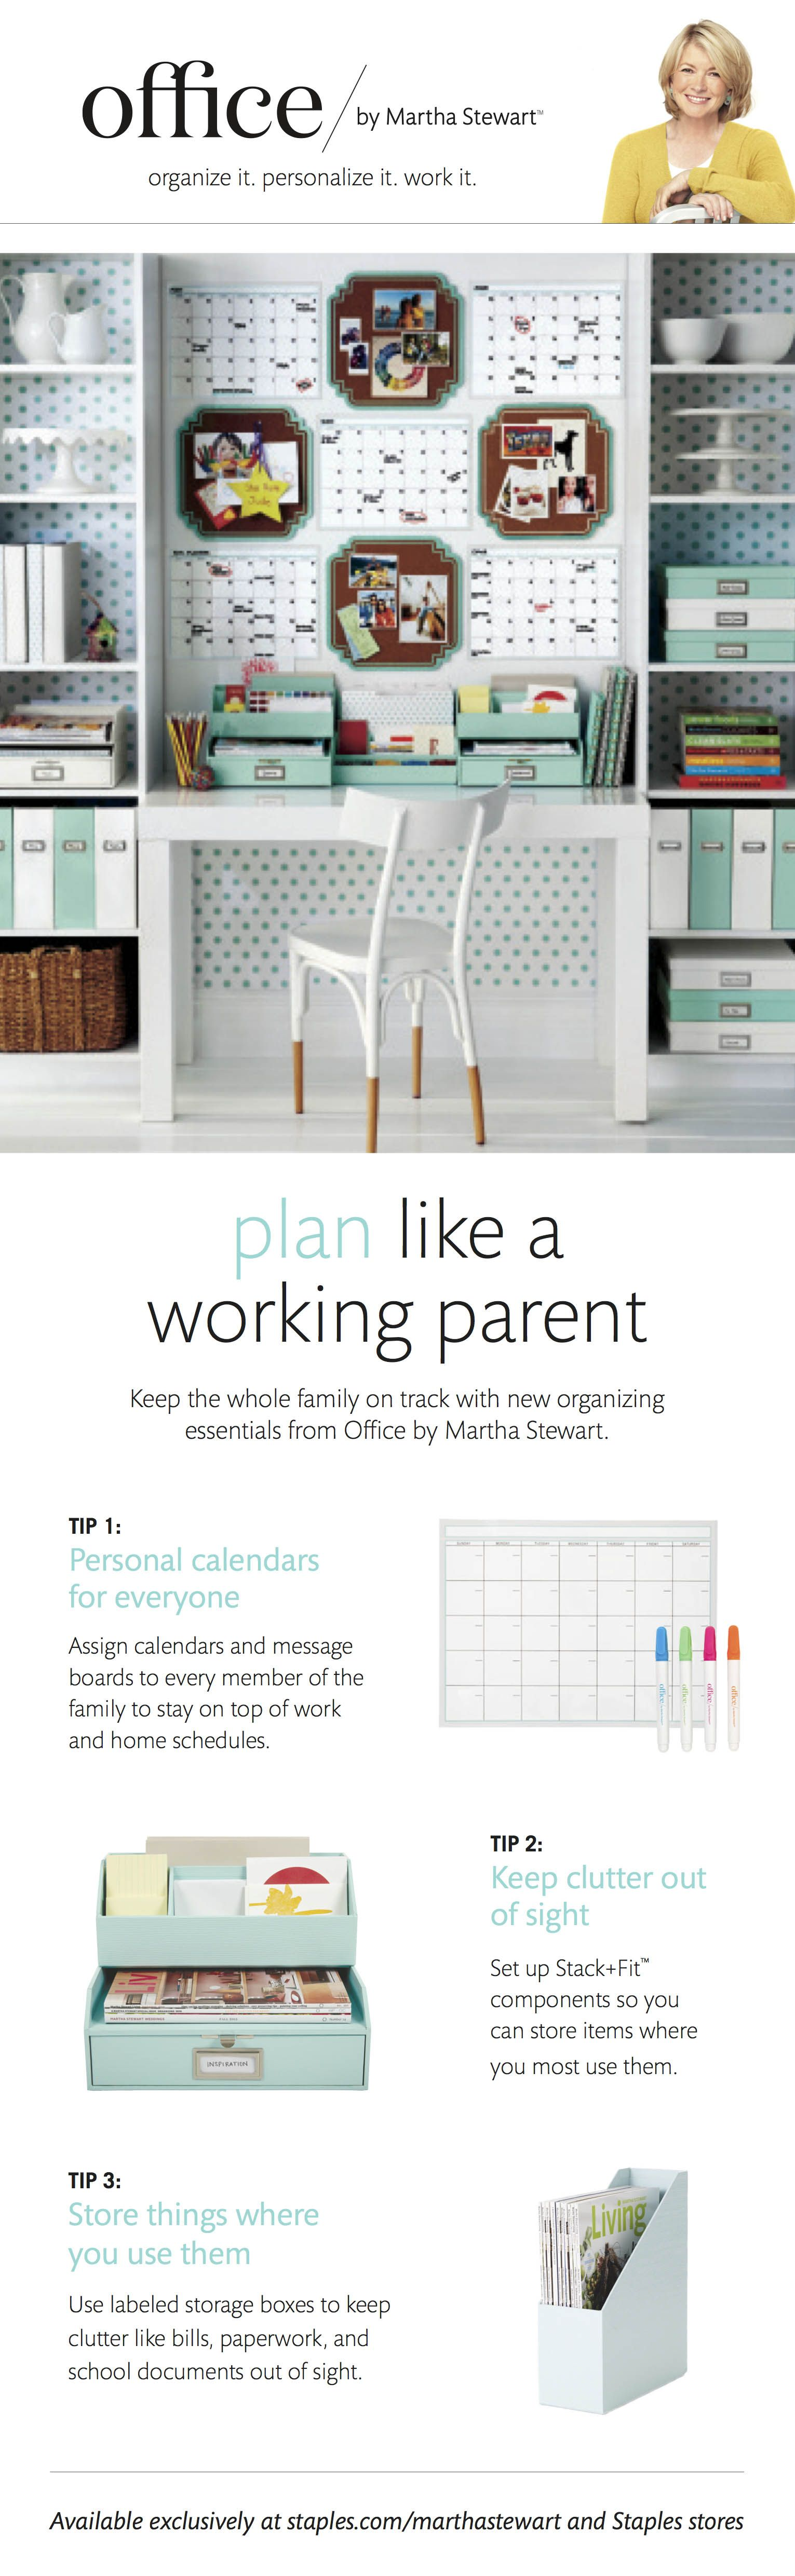 Organize with fice by Martha Stewart™ products to add a bright